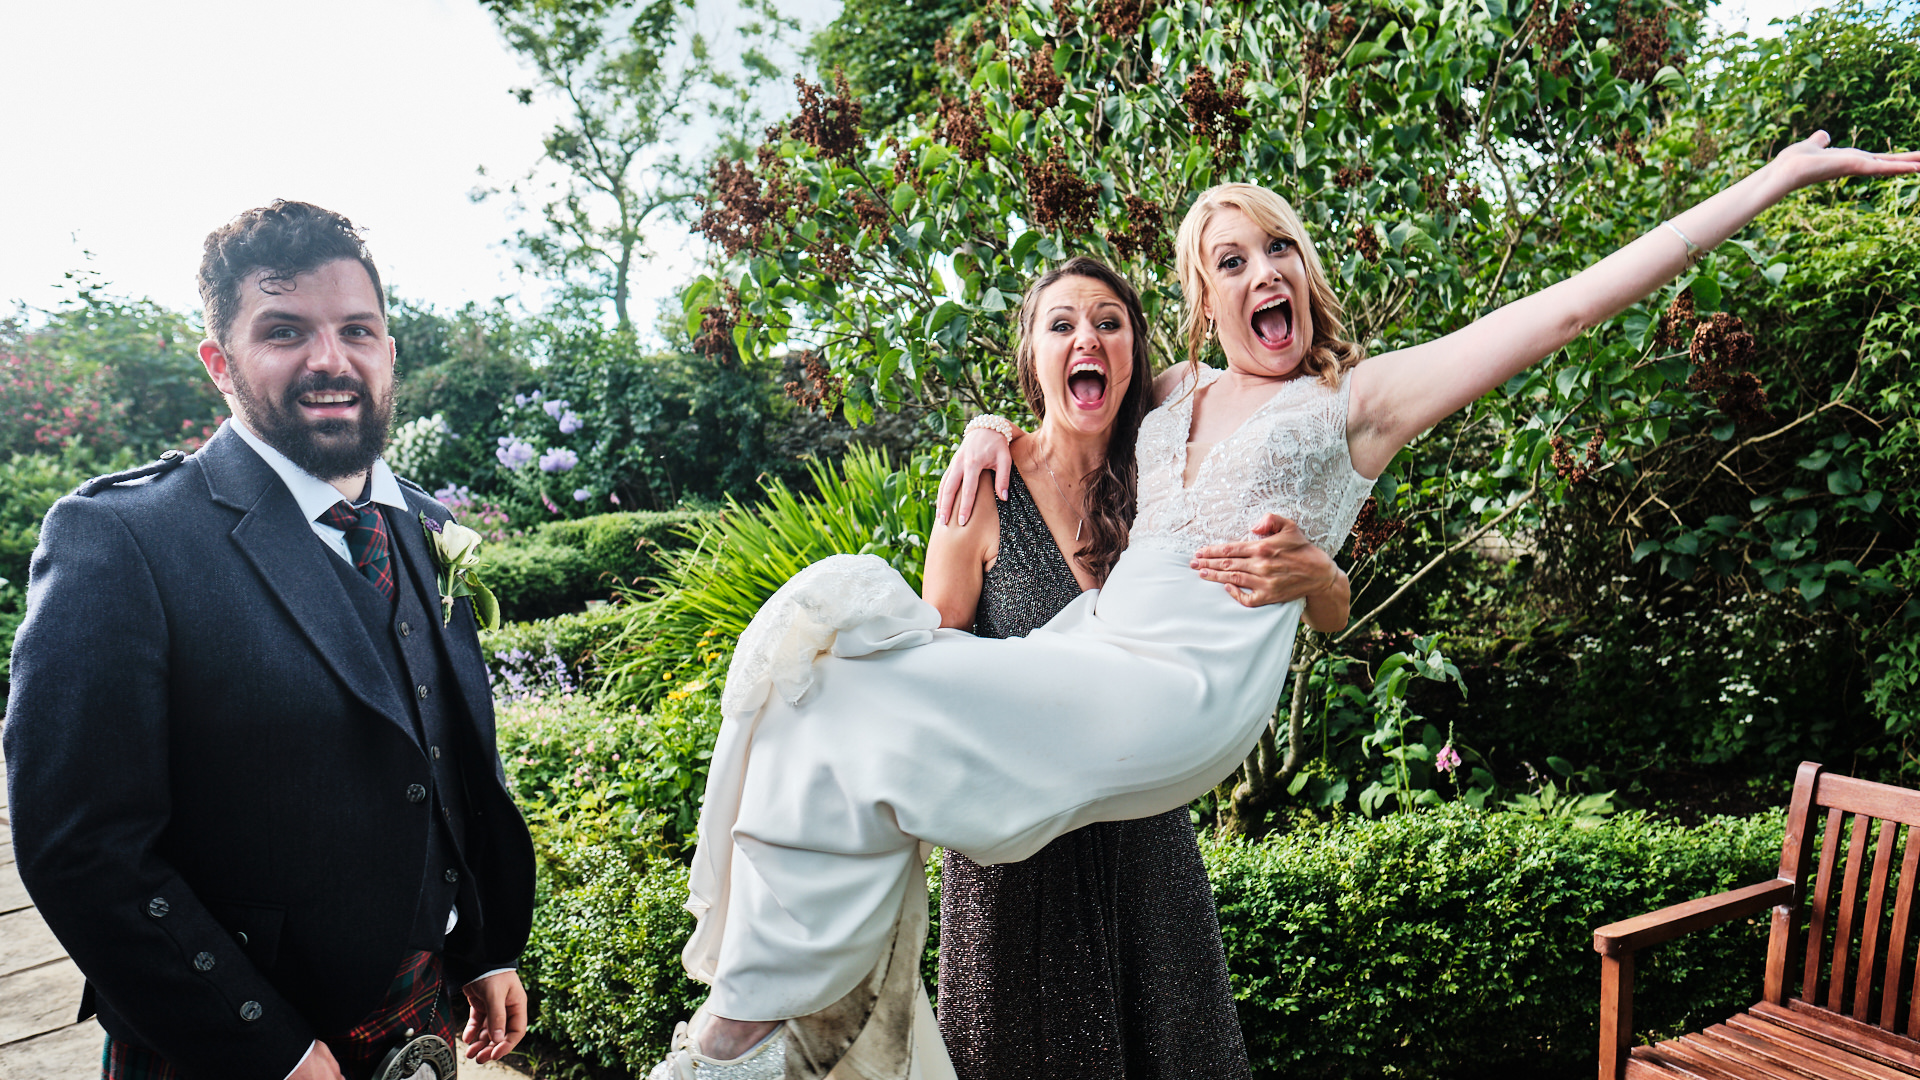 colour photograph of a bride being carried by her bridesmaid during the wedding reception while the groom laughs